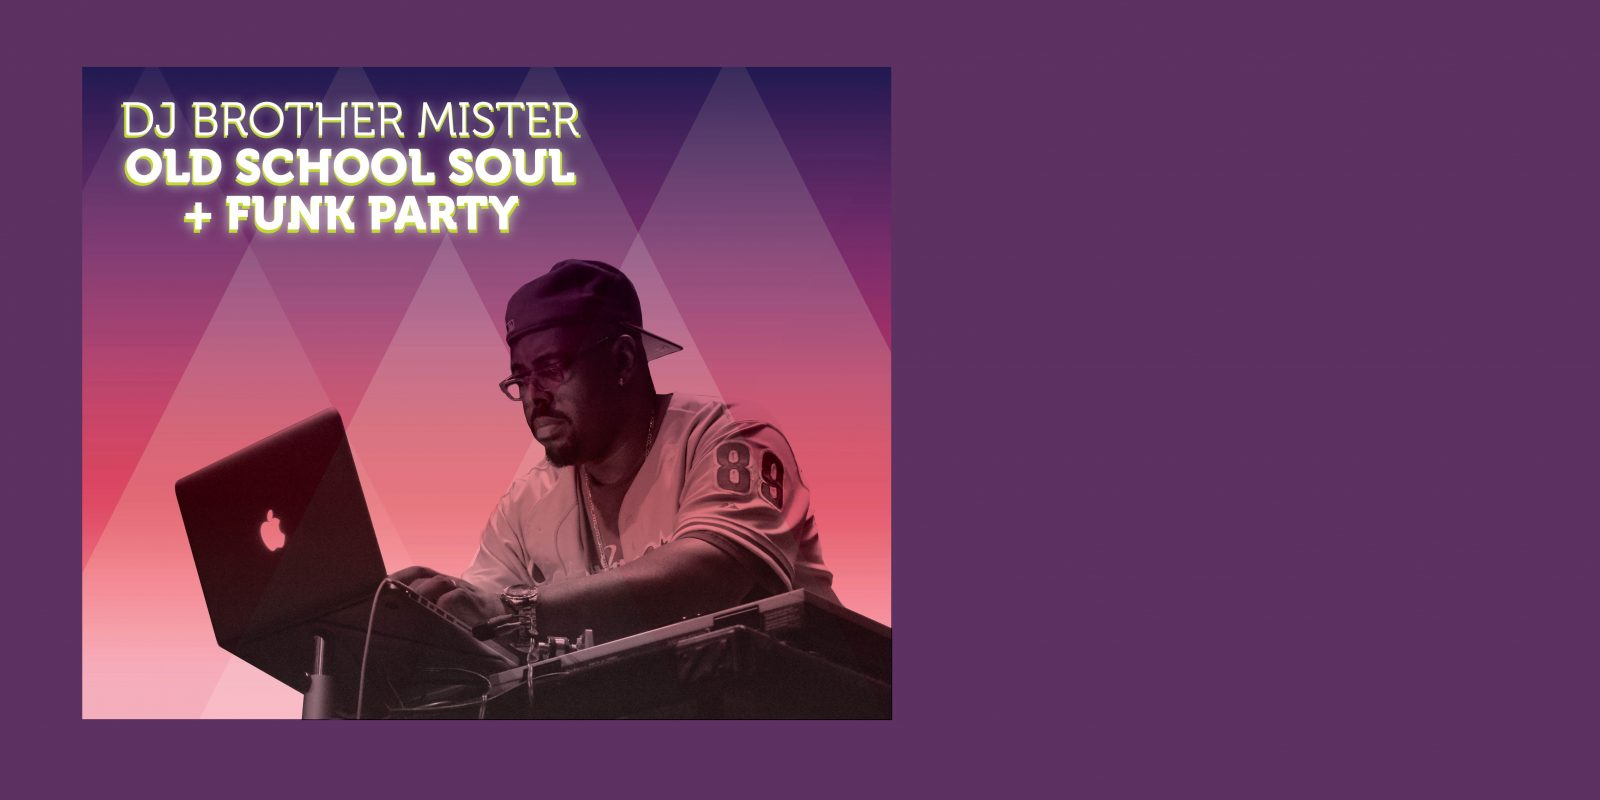 Friday, July 28 – DJ Brother Mister Old School Soul + Funk Party